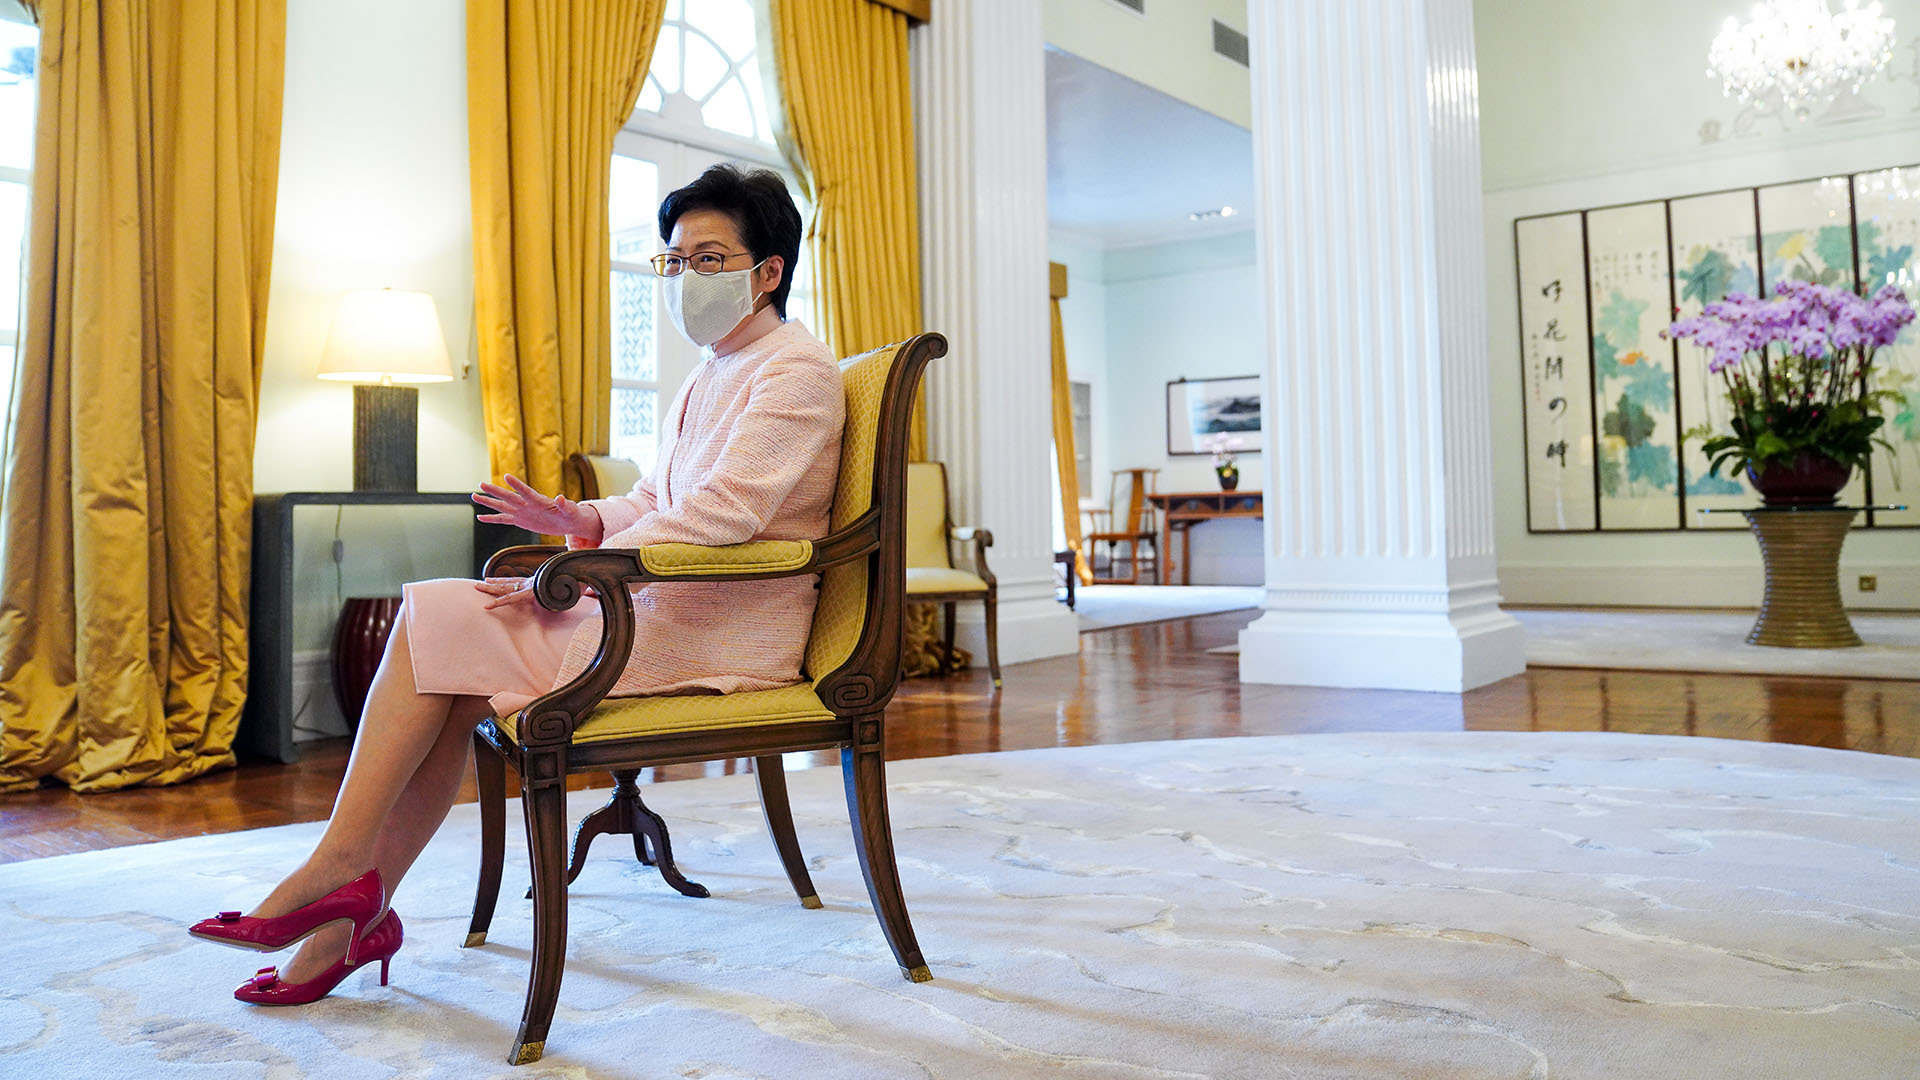 Hong Kong leader Carrie Lam to get tough on Covid-19 prevention measures cases surpass 100